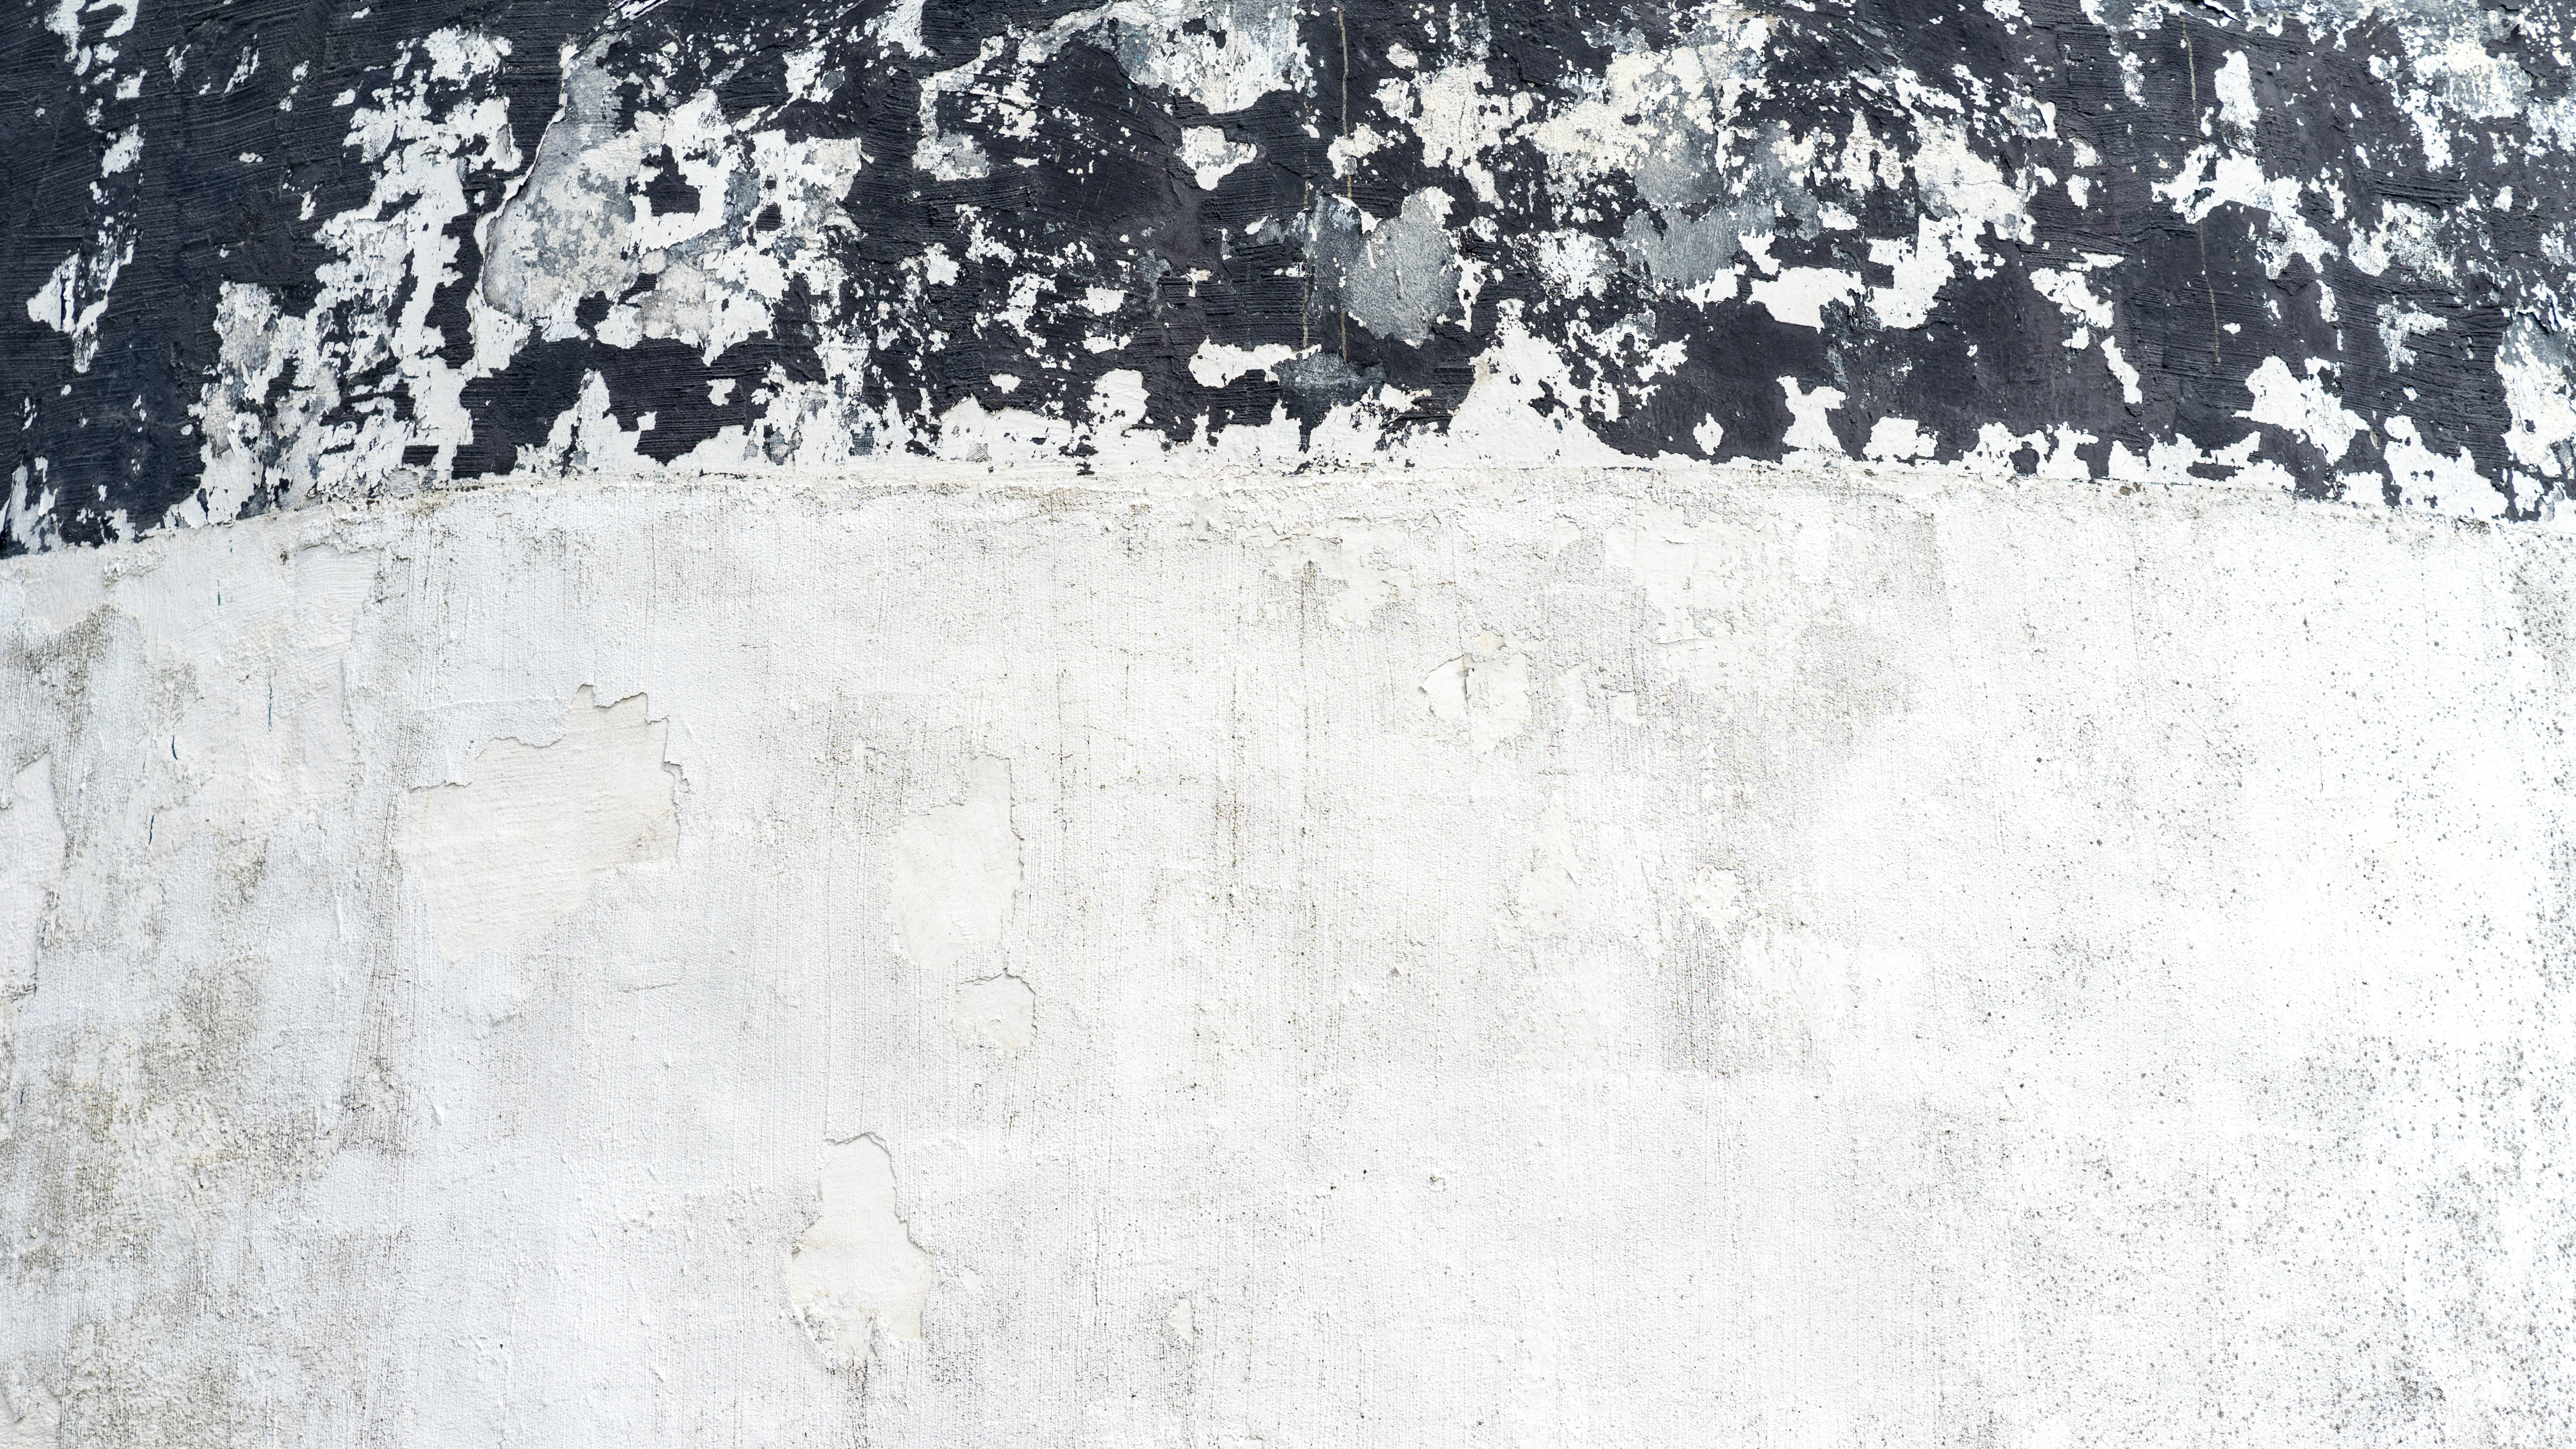 Black and white close up shot of grunge, textured painted artwork